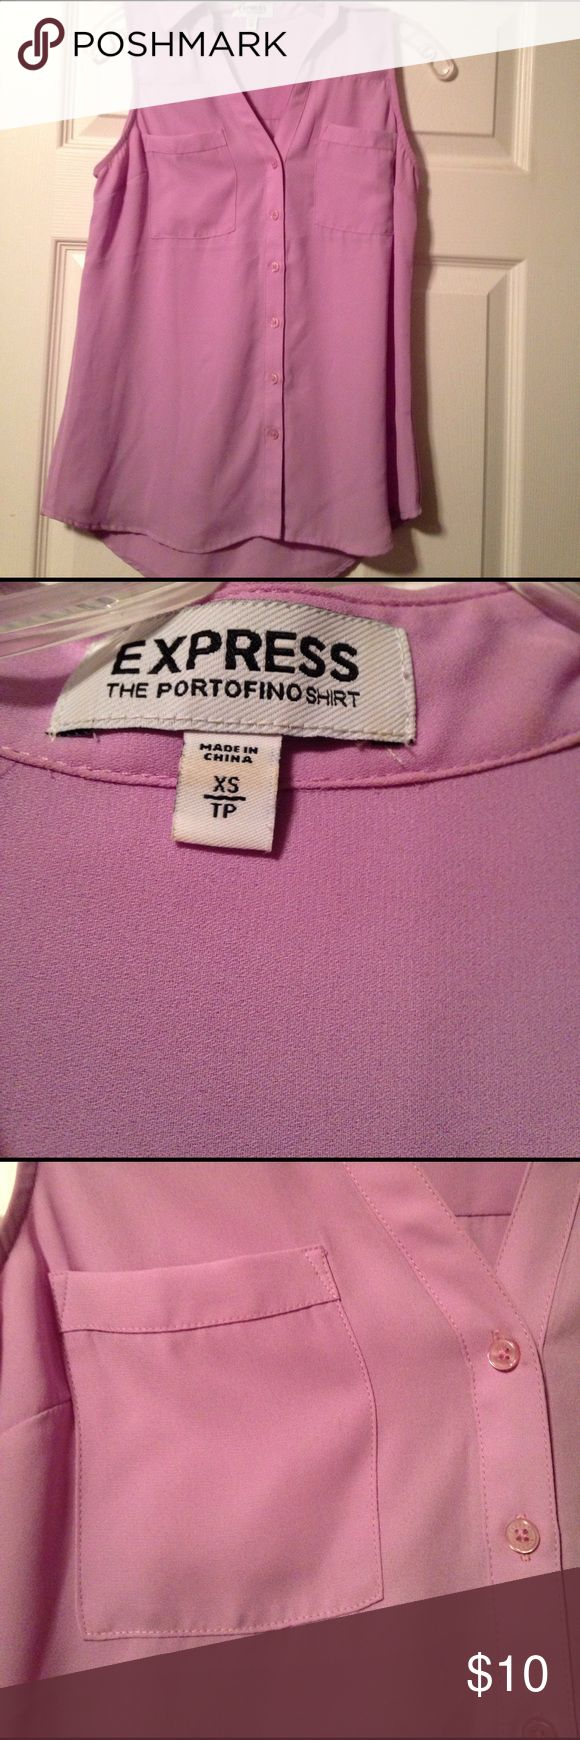 Express Portfino Shirt Express sleeveless Portfino shirt. This is my favorite shirt style from Express. It's fits more like a slim cut, and the extra small size fits more like a small. Throw a blazer over top and it's perfect for work! Color is a pastel purple. Perfect for spring! Express Tops Blouses